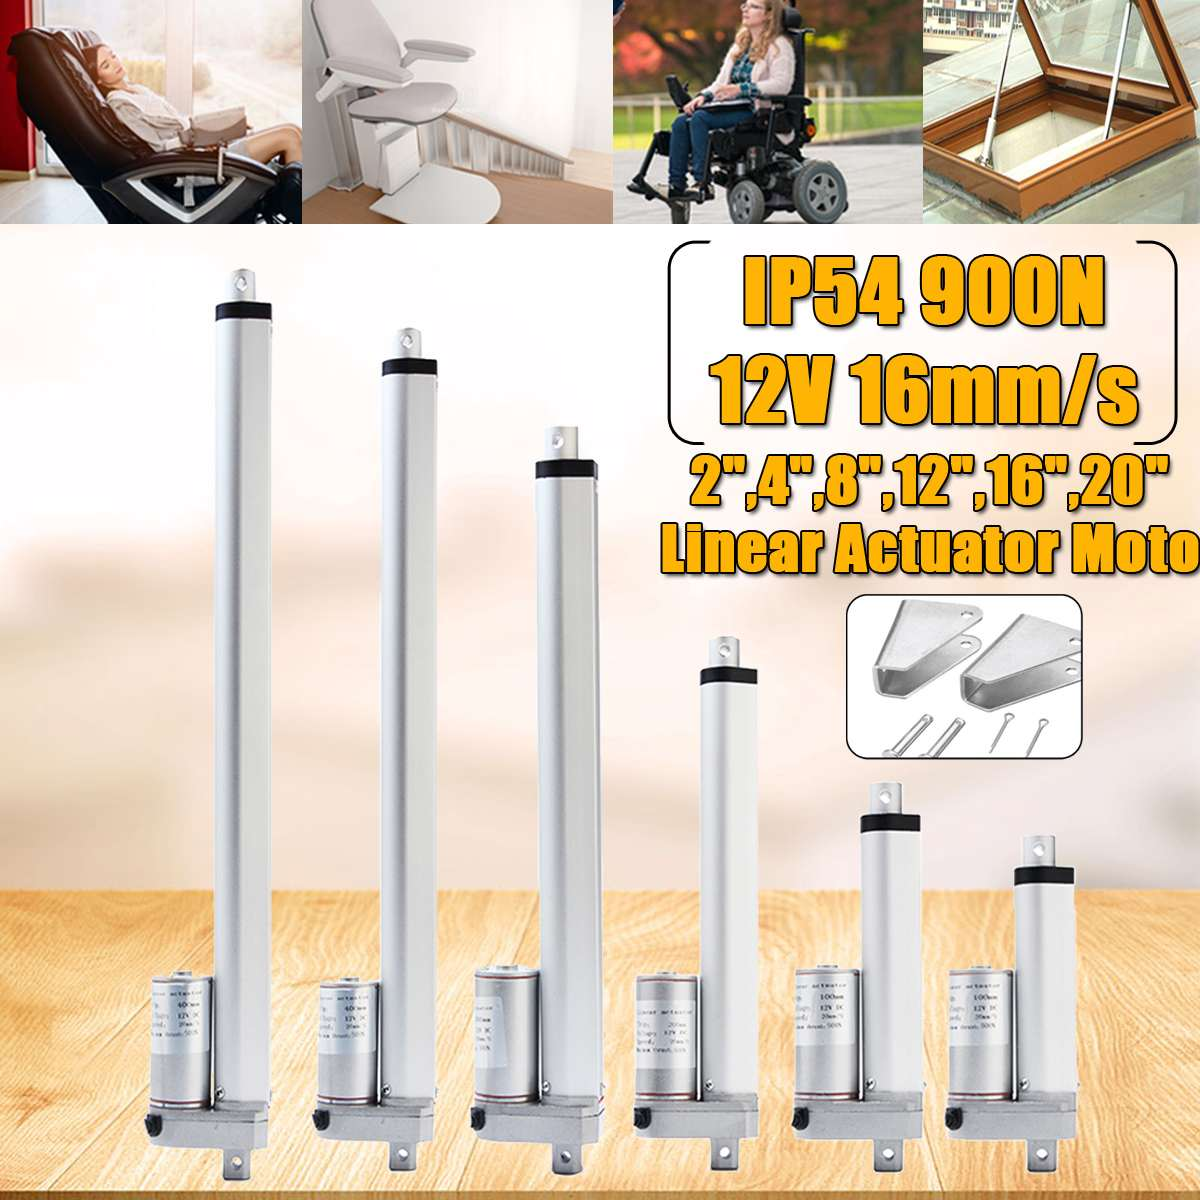 900N 2-20 inch 12V 16mm / s Small DC Electric Linear Actuator Motor Push Rod White Aluminum Alloy900N 2-20 inch 12V 16mm / s Small DC Electric Linear Actuator Motor Push Rod White Aluminum Alloy